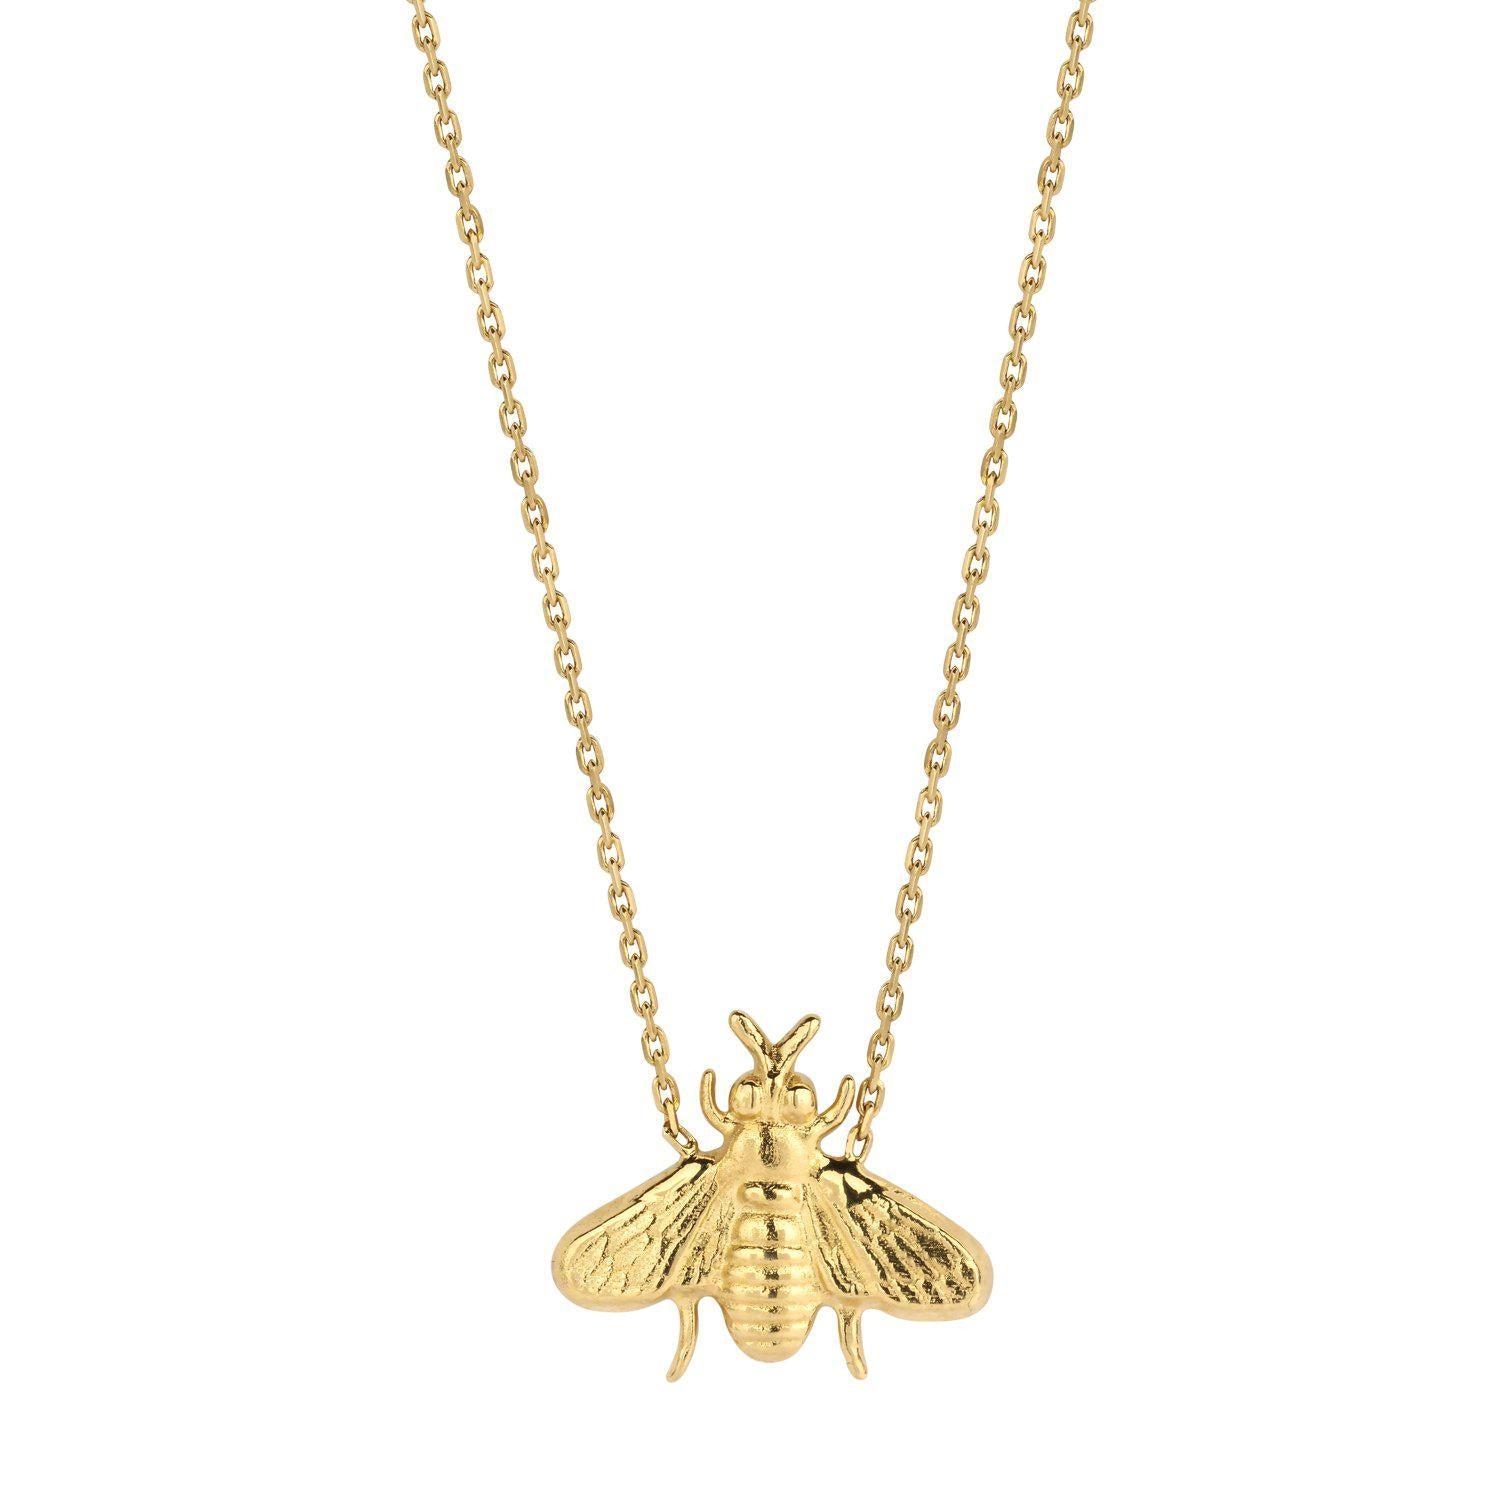 Bee necklace gold - Souvenirs de Pomme